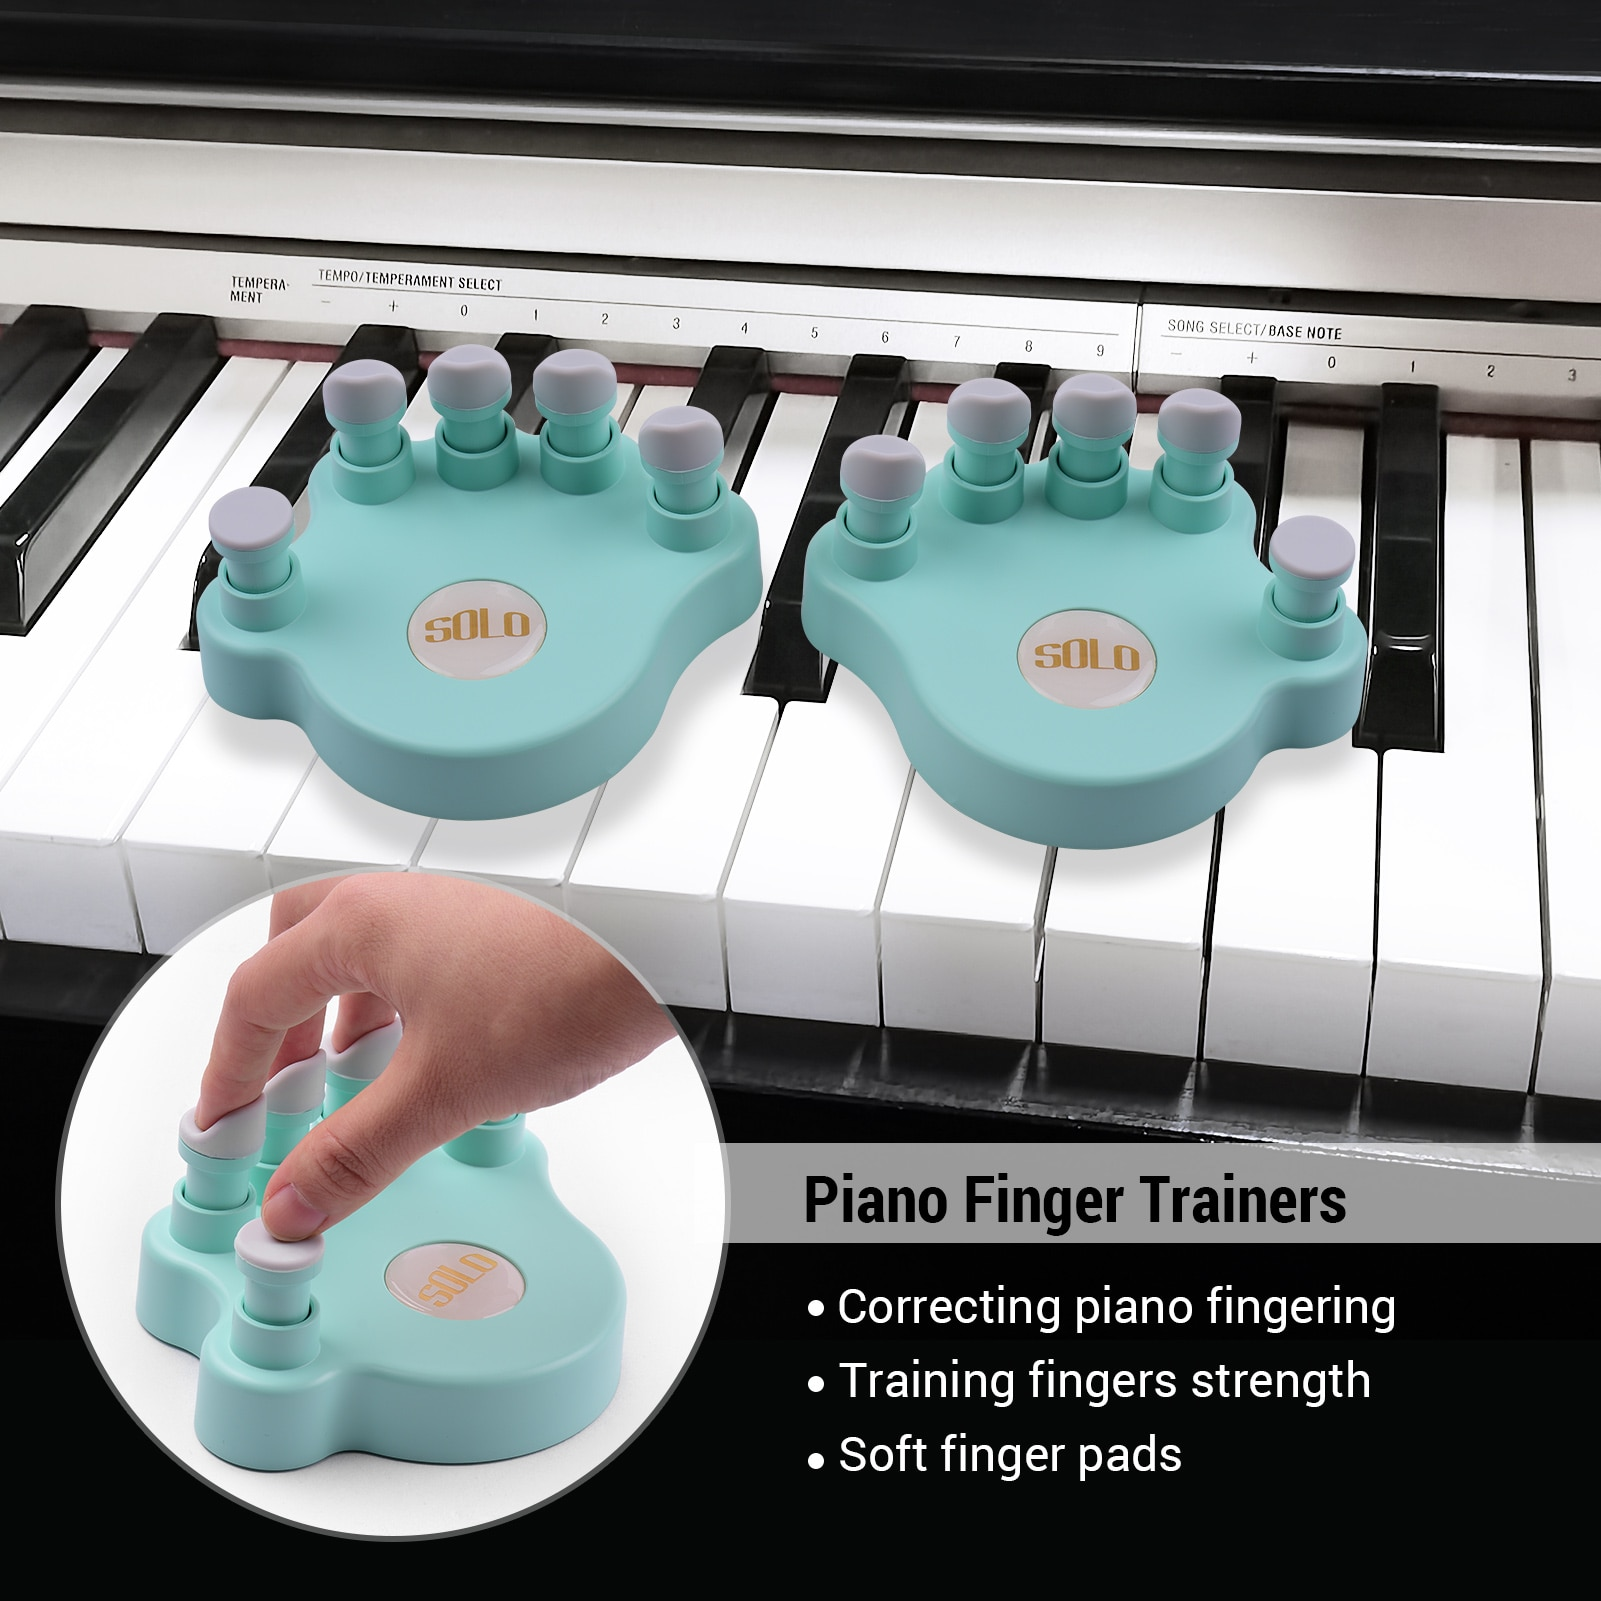 SOLO Piano Finger Trainers Fingers Strength Training Tools Finger Correctors Soft Finger Pads Piano